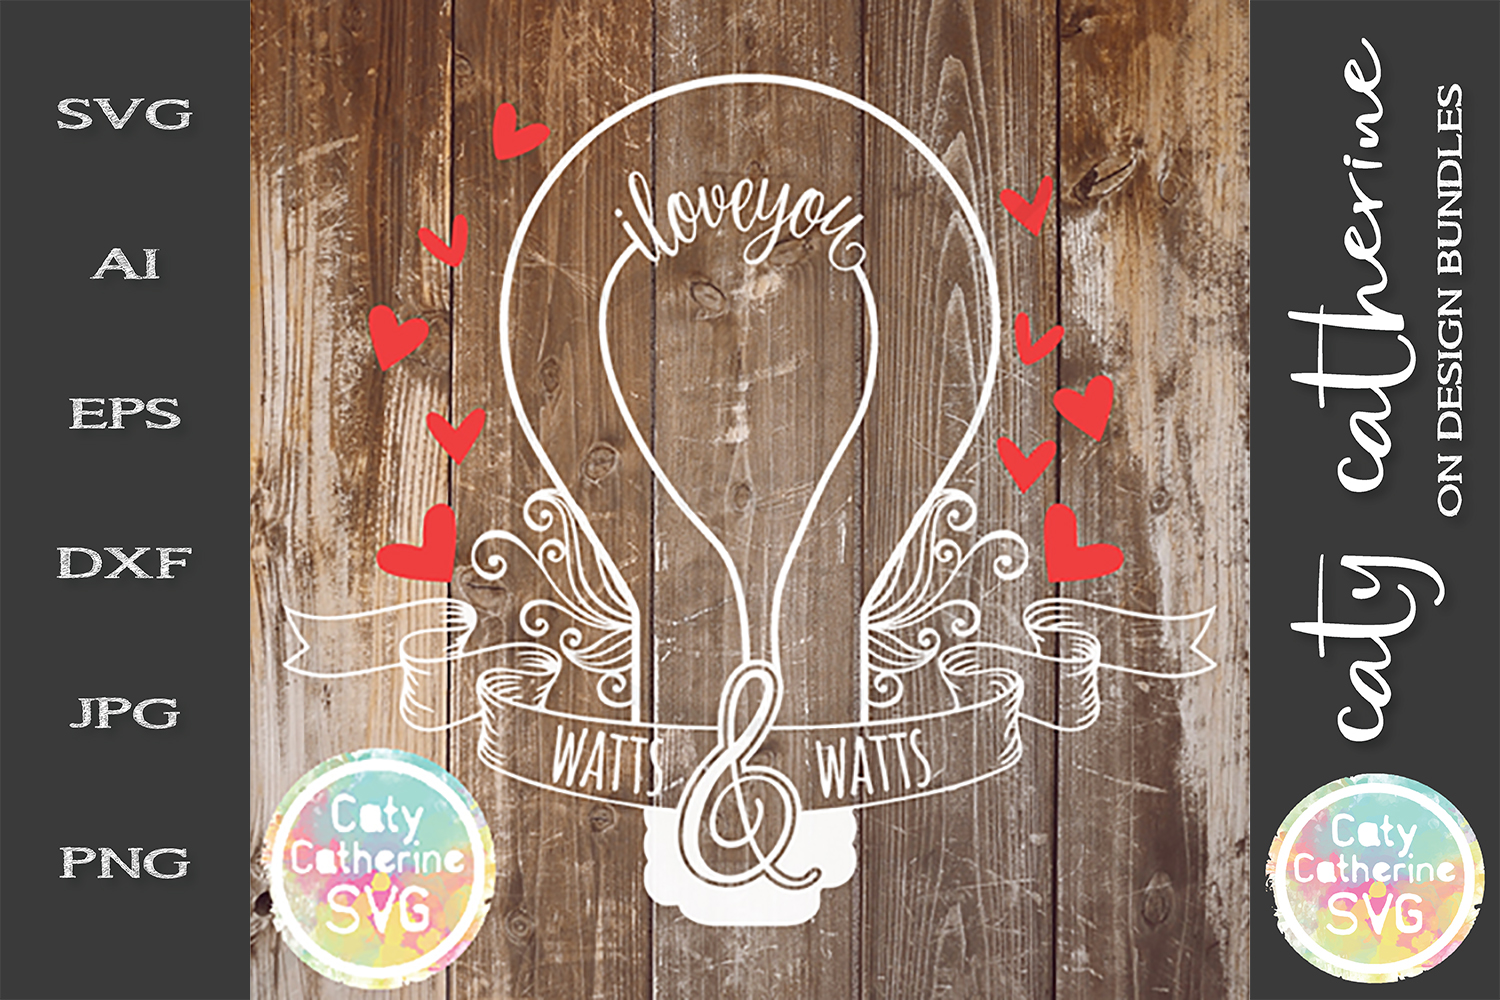 I Love You Watts And Watts Valentine SVG Light Bulb Cute example image 1